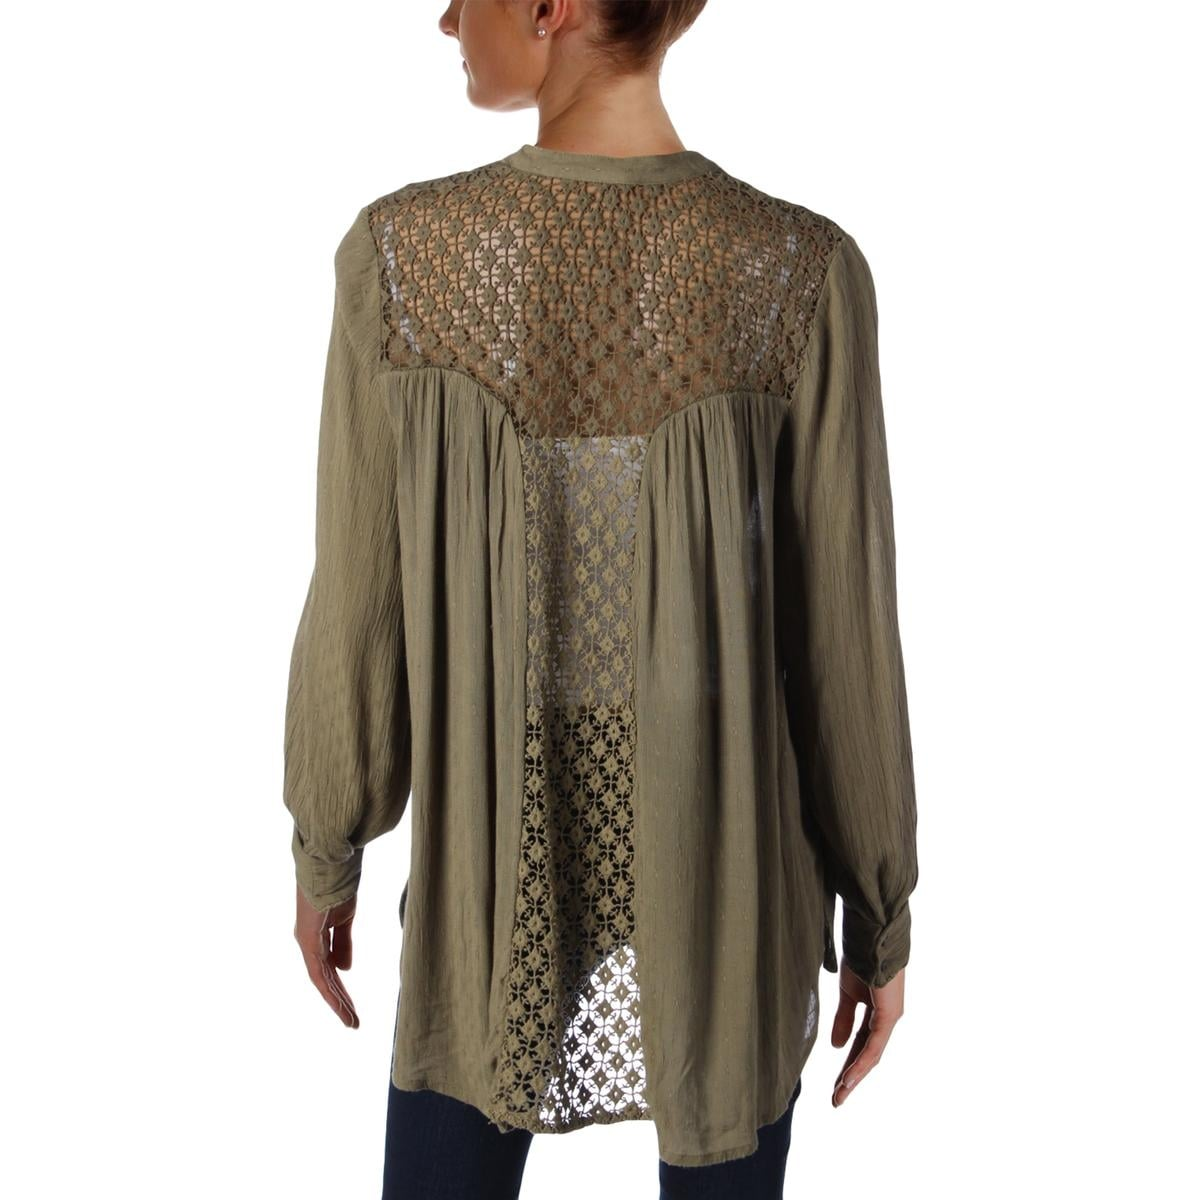 b07dddab829d7 Shop Free People Womens Button-Down Top Crochet Back Gauze - Free Shipping  On Orders Over $45 - Overstock - 17306537